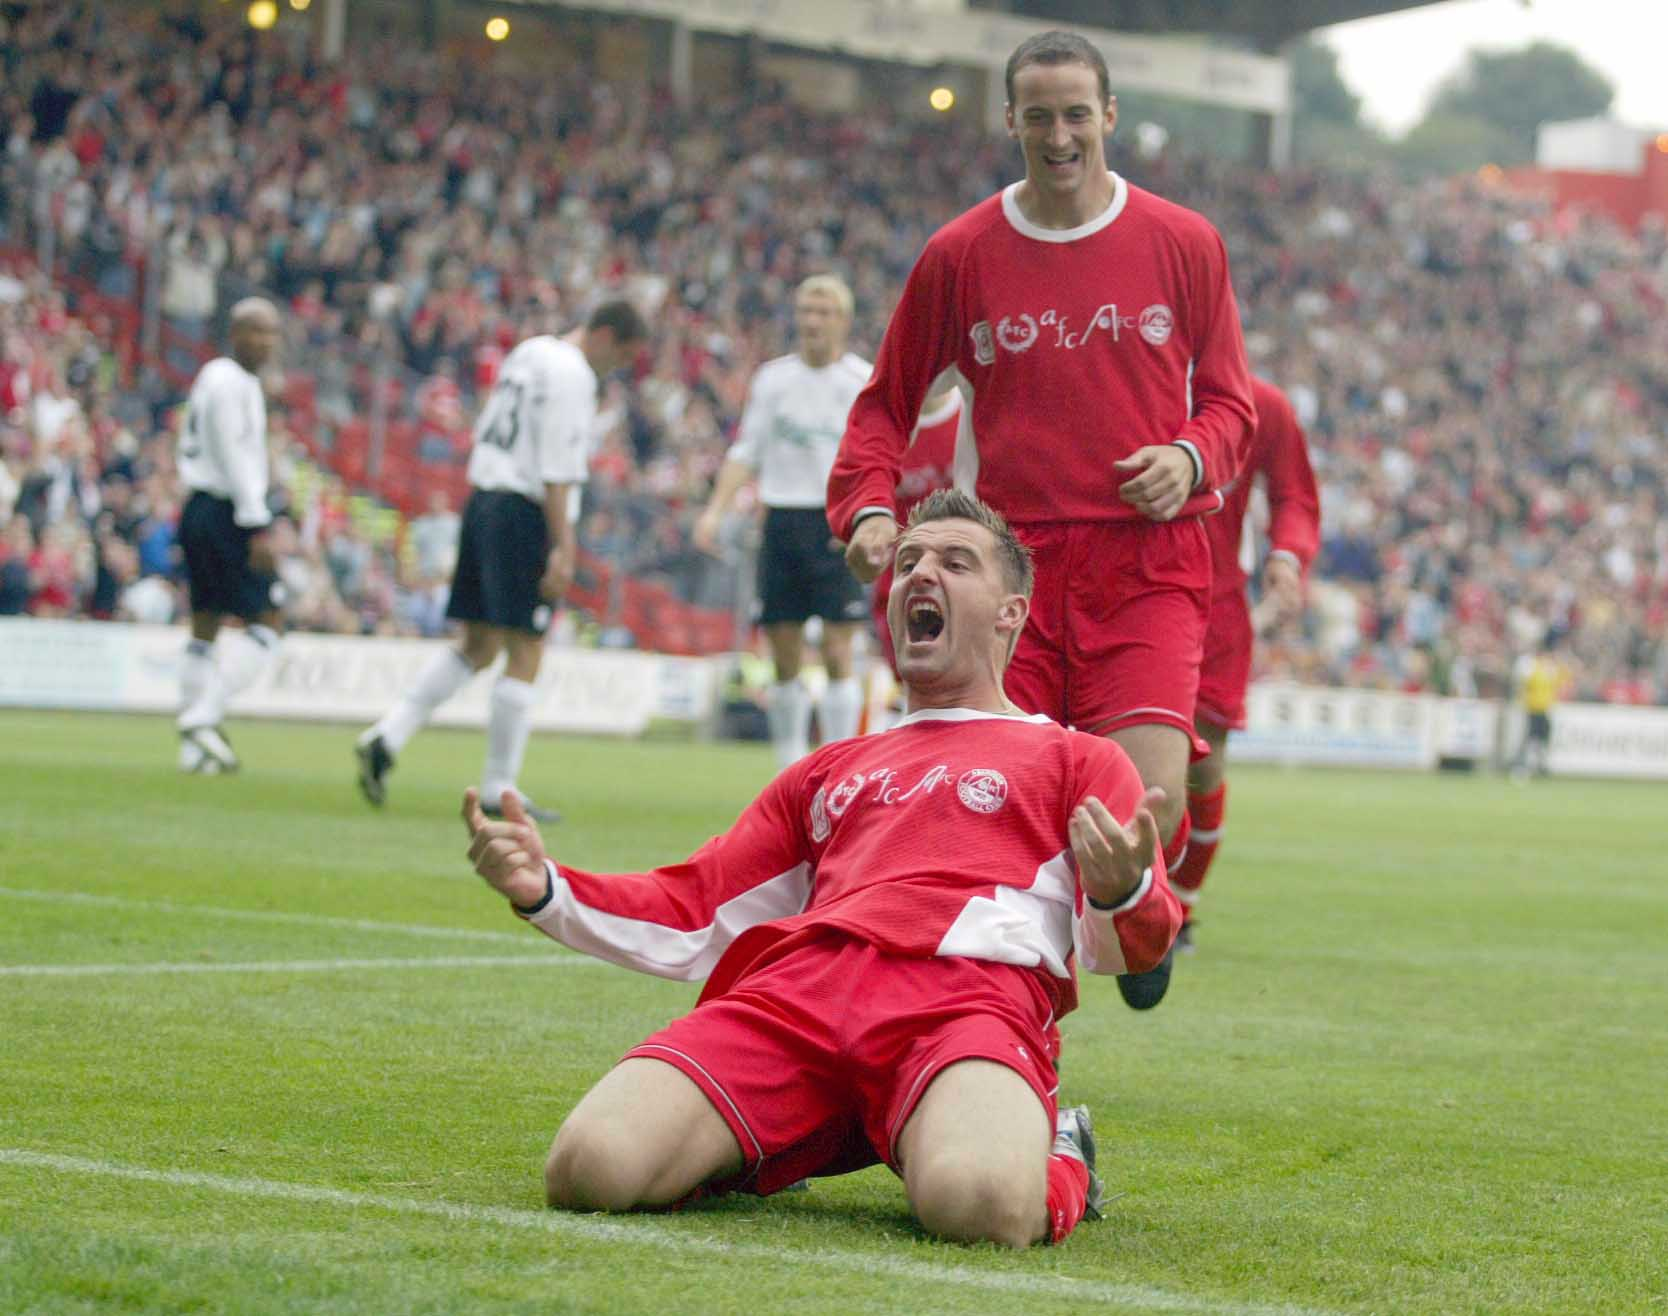 David Zdrillic celebrates his goal for Aberdeen against Liverpool at Pittodrie in 2003.